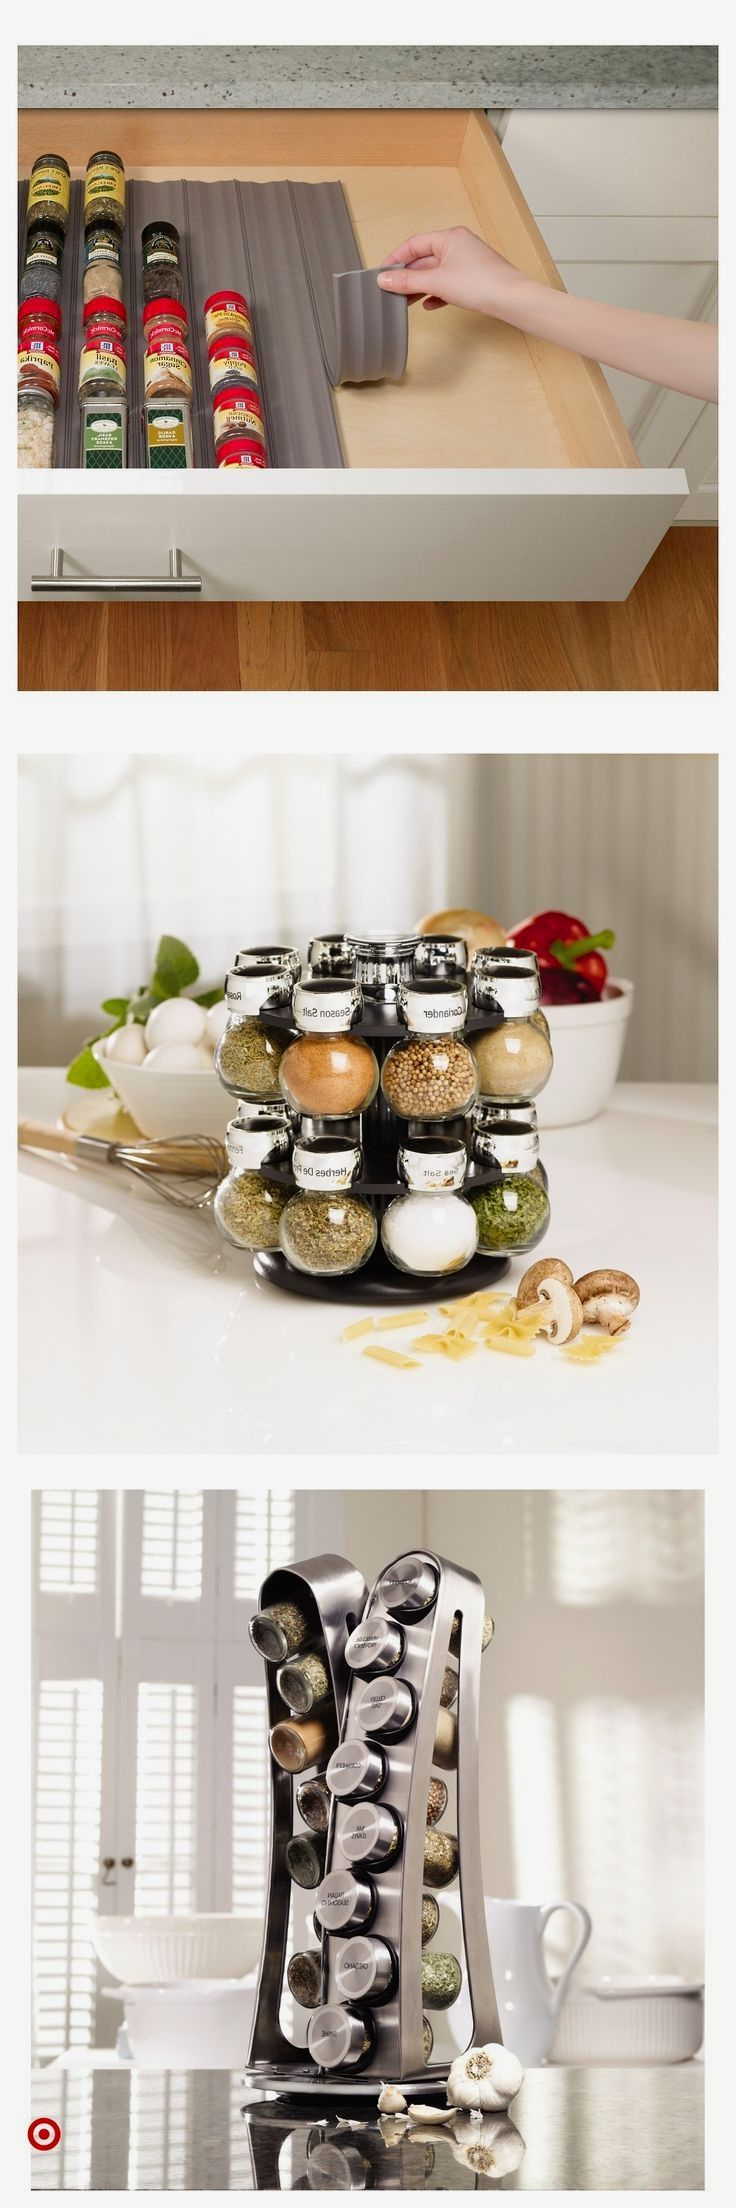 Shop Target For Spice Rack You Will Love At Great Low